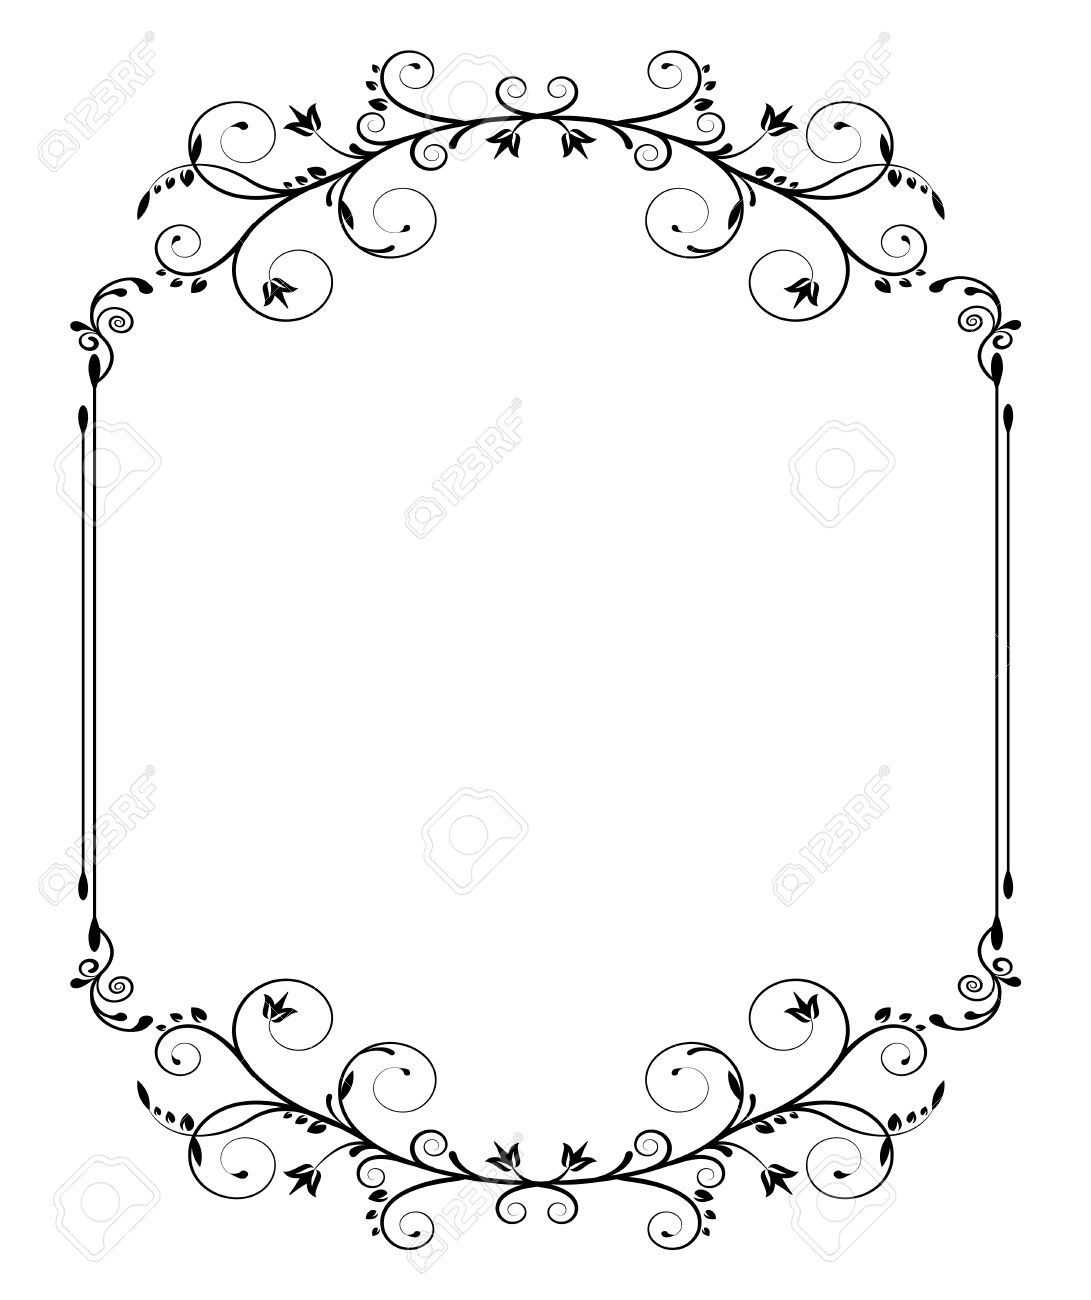 Black Vintage Frame With Thin Swirls On White Background Stock Vector